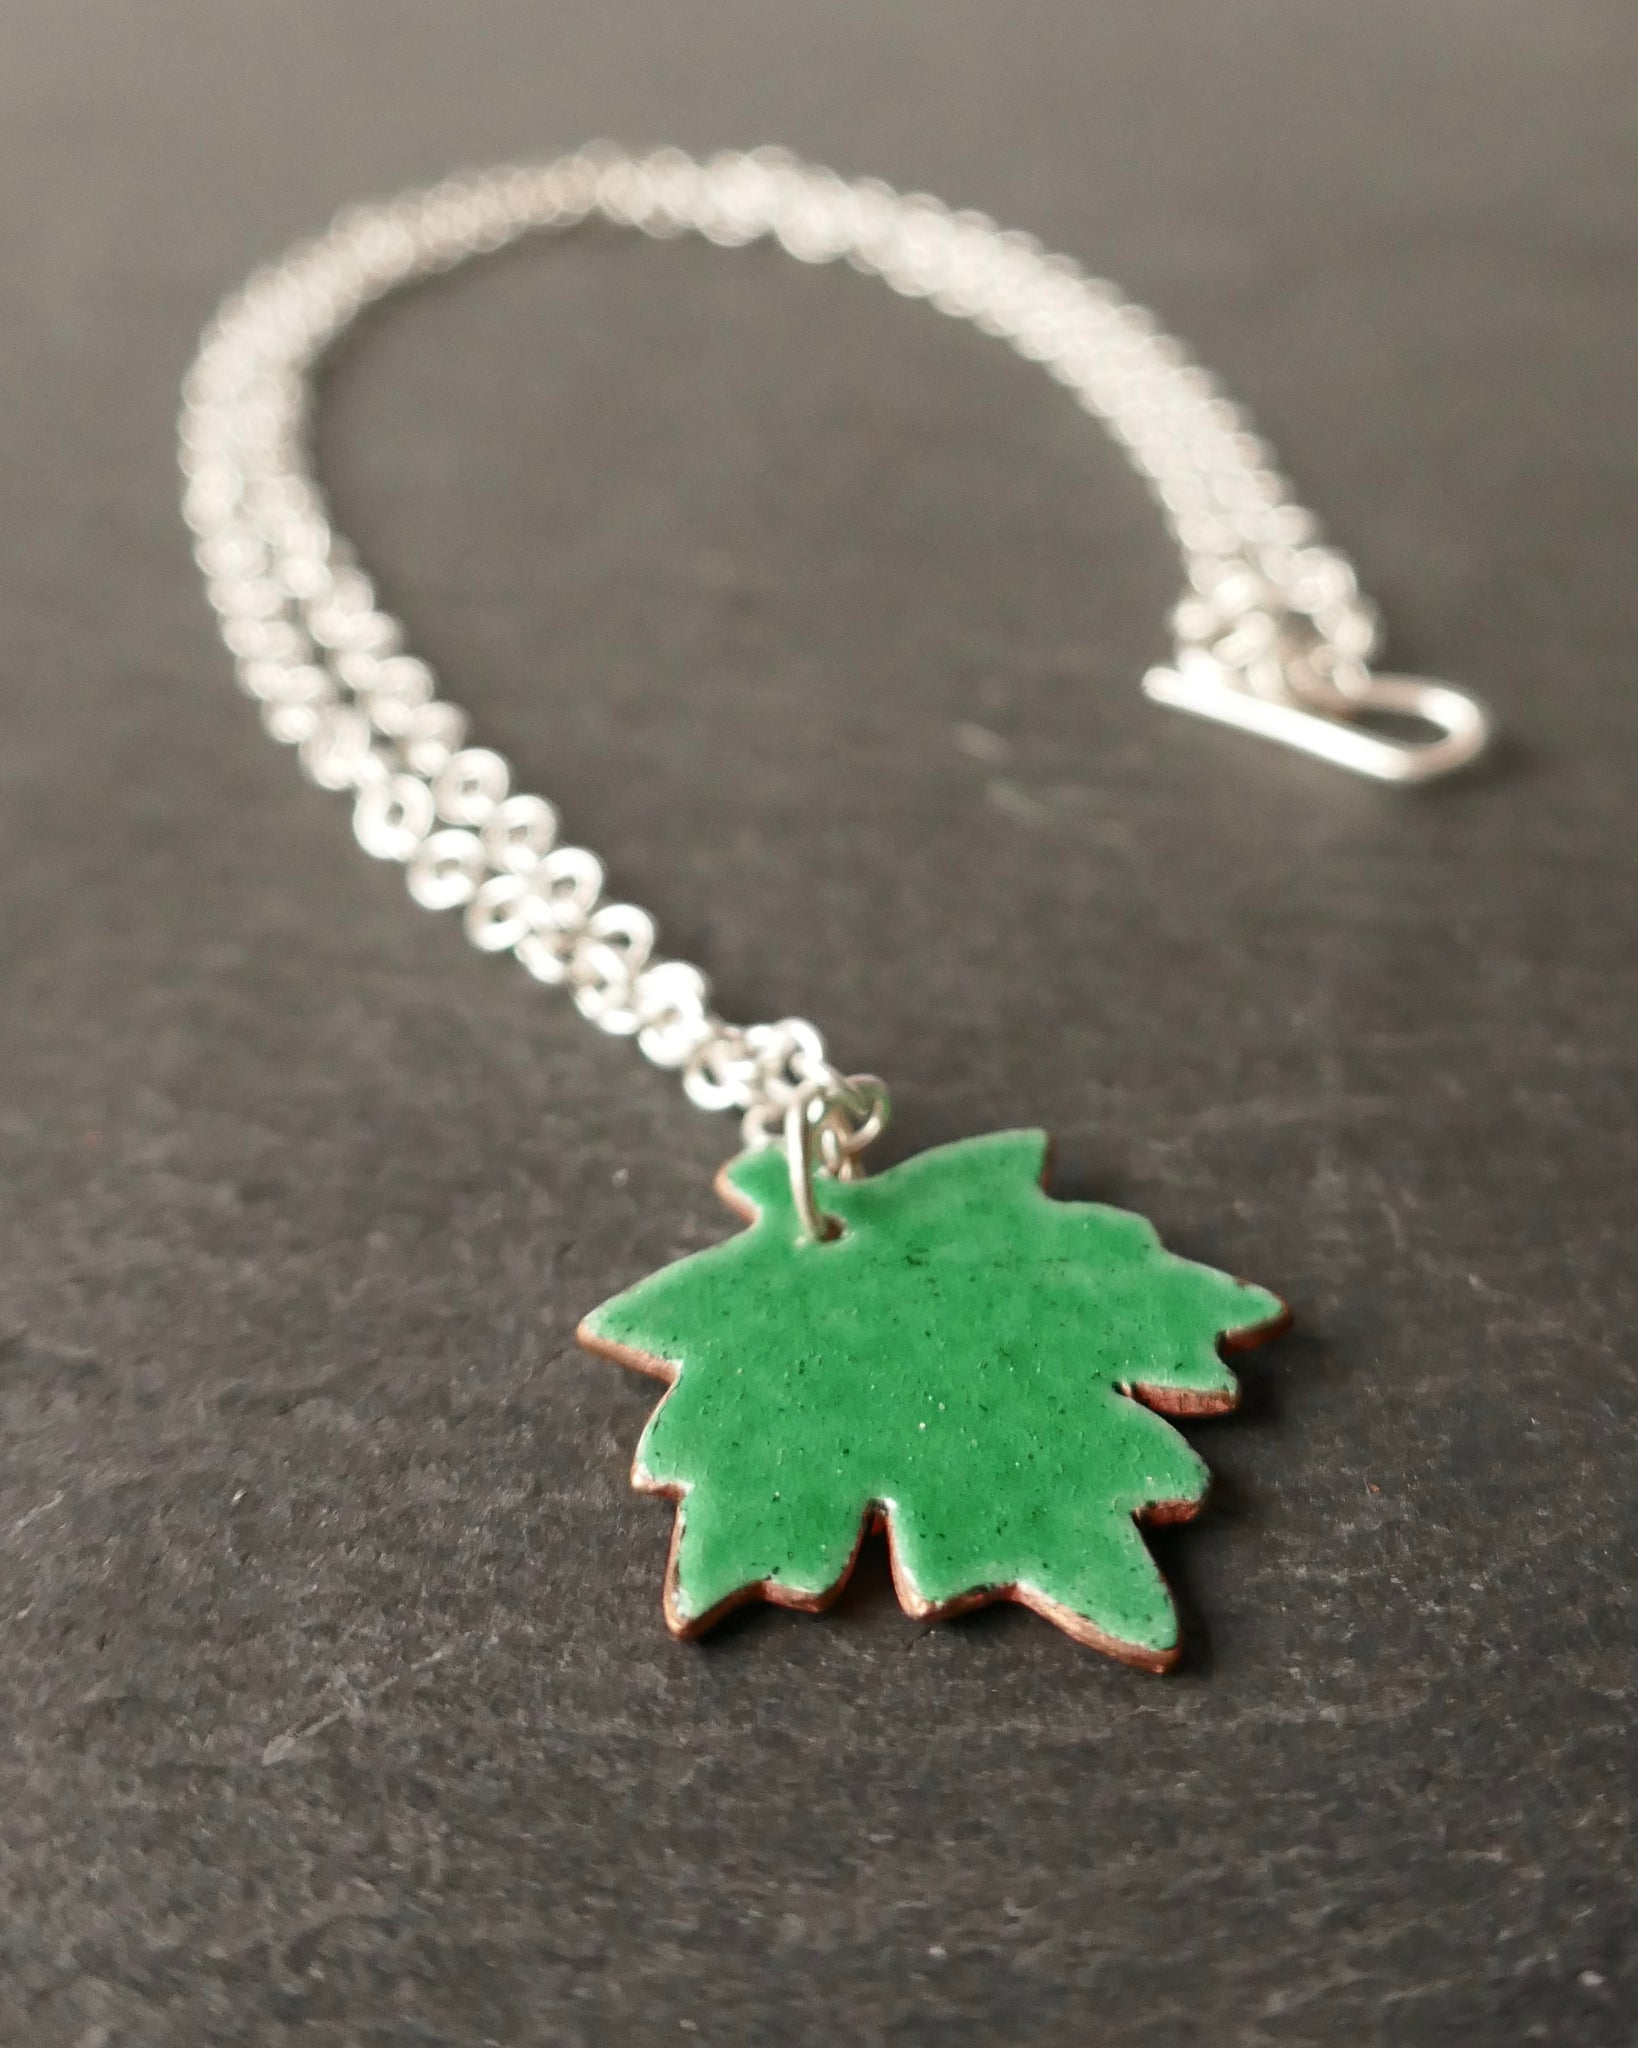 Sycamorwydden necklace